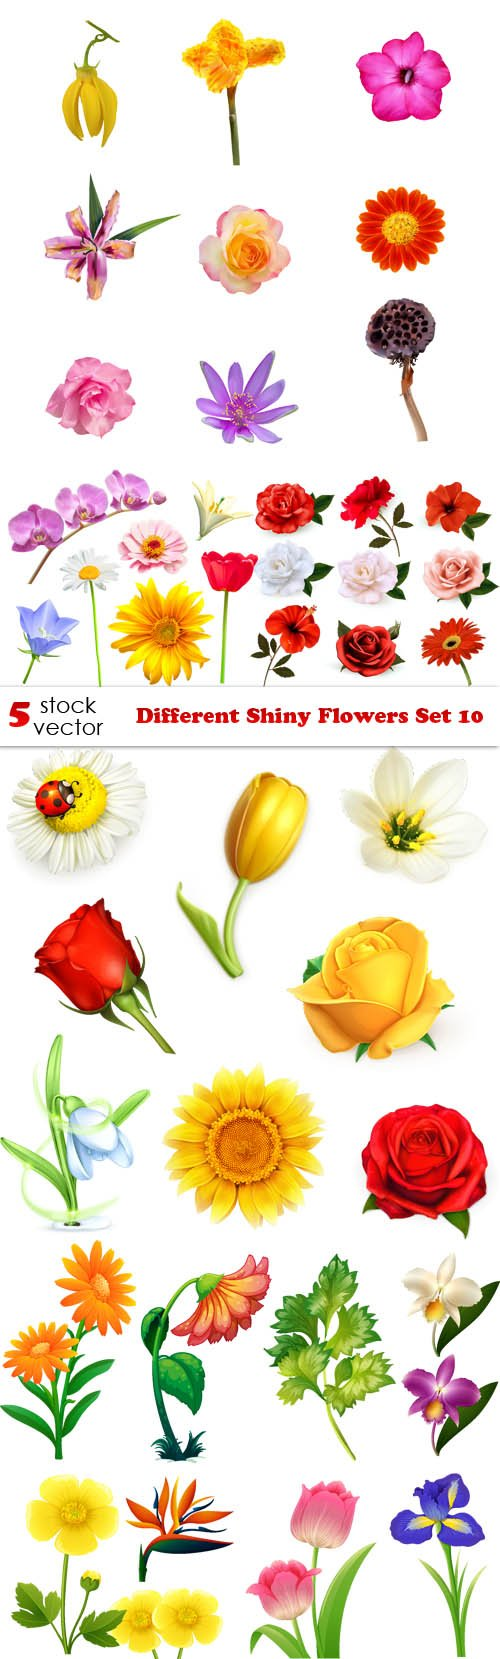 Vectors - Different Shiny Flowers Set 10